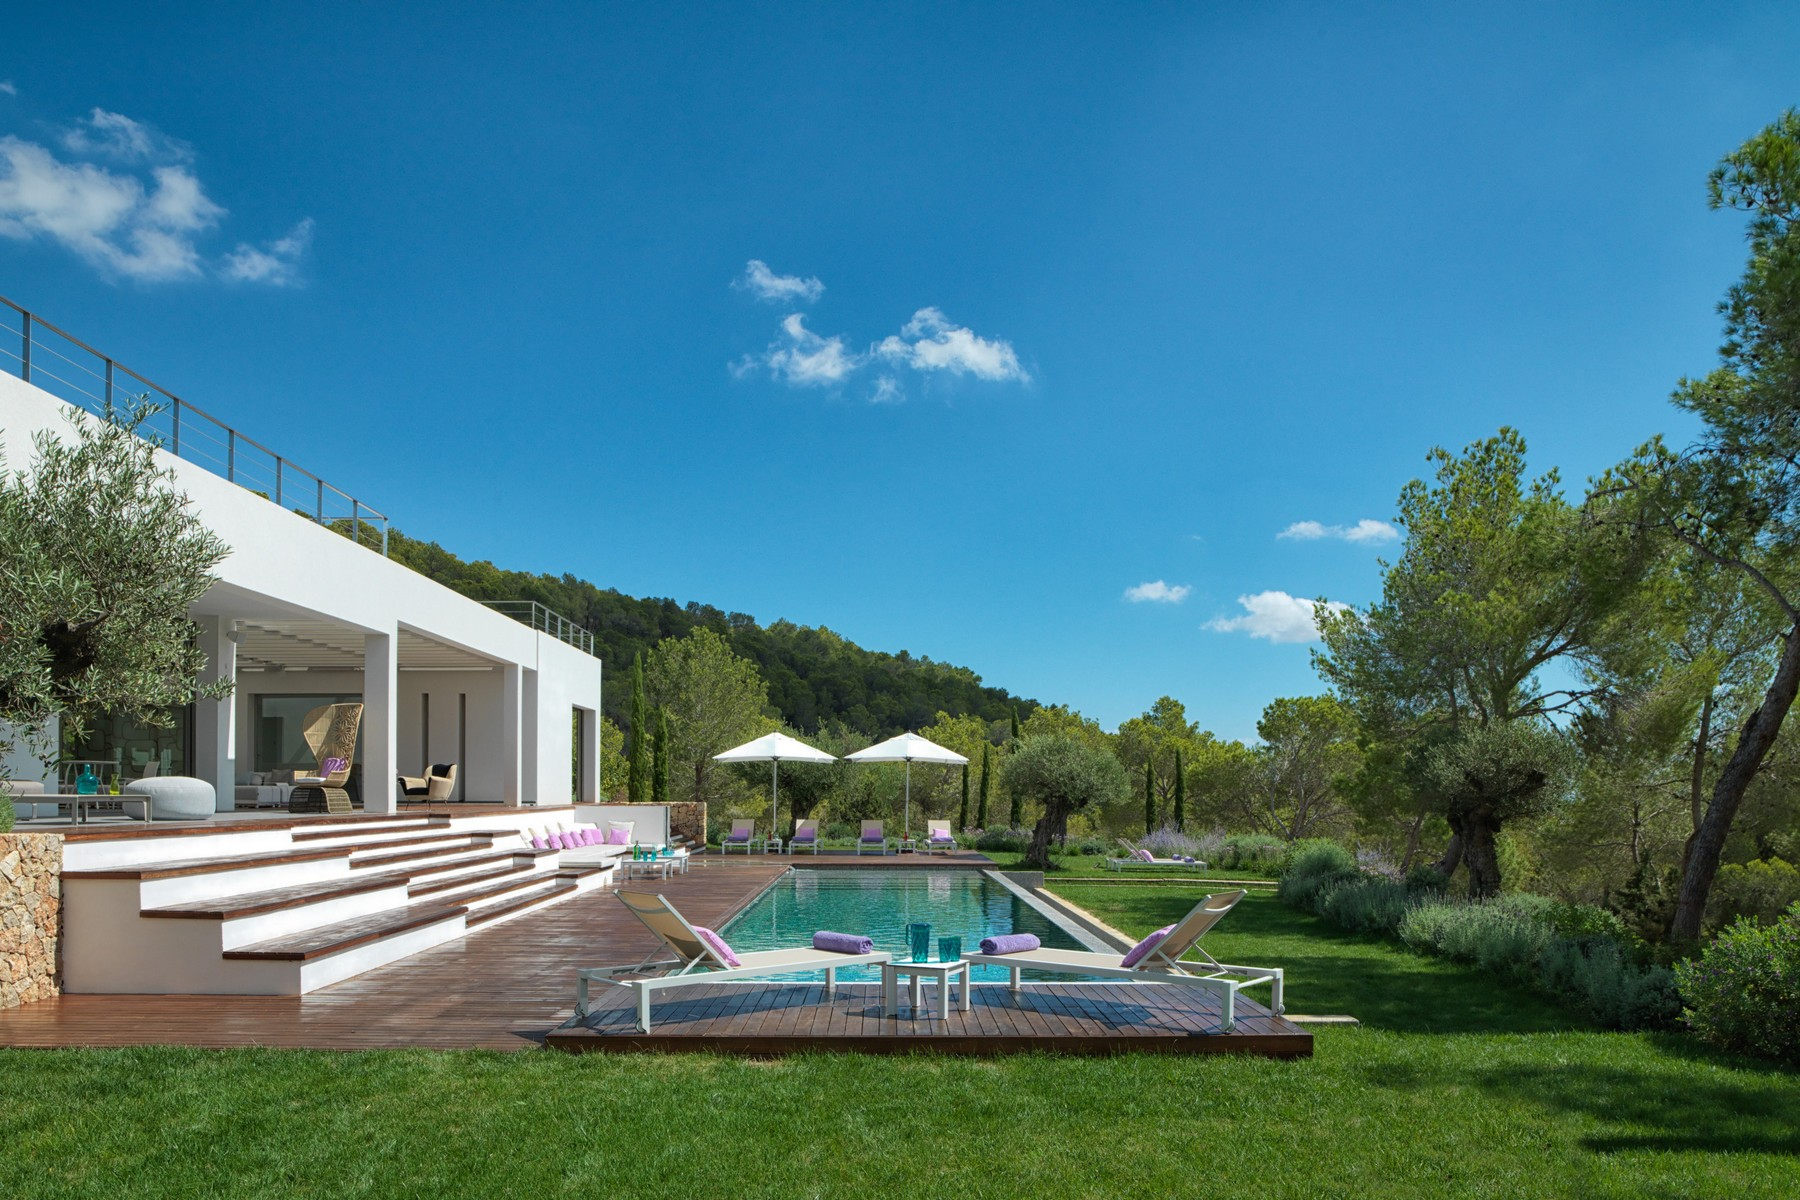 Single Family Home for Sale at Designed Private Villa In A Hill Ibiza, Ibiza, 07830 Spain